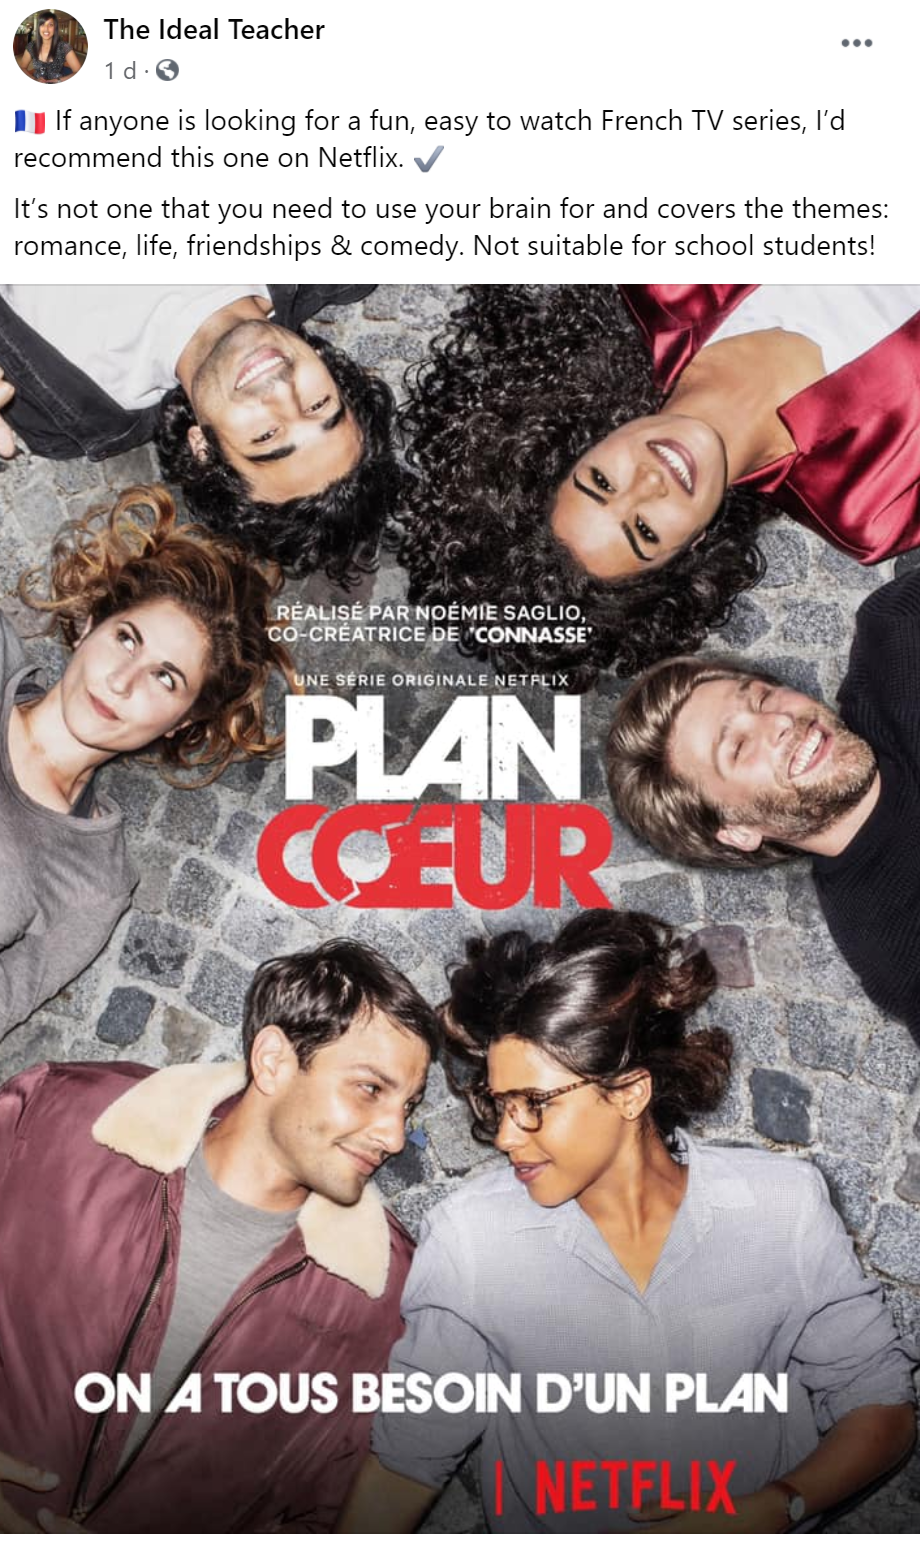 Plan Coeur Hook Up Plan Bingeworthy French TV Show